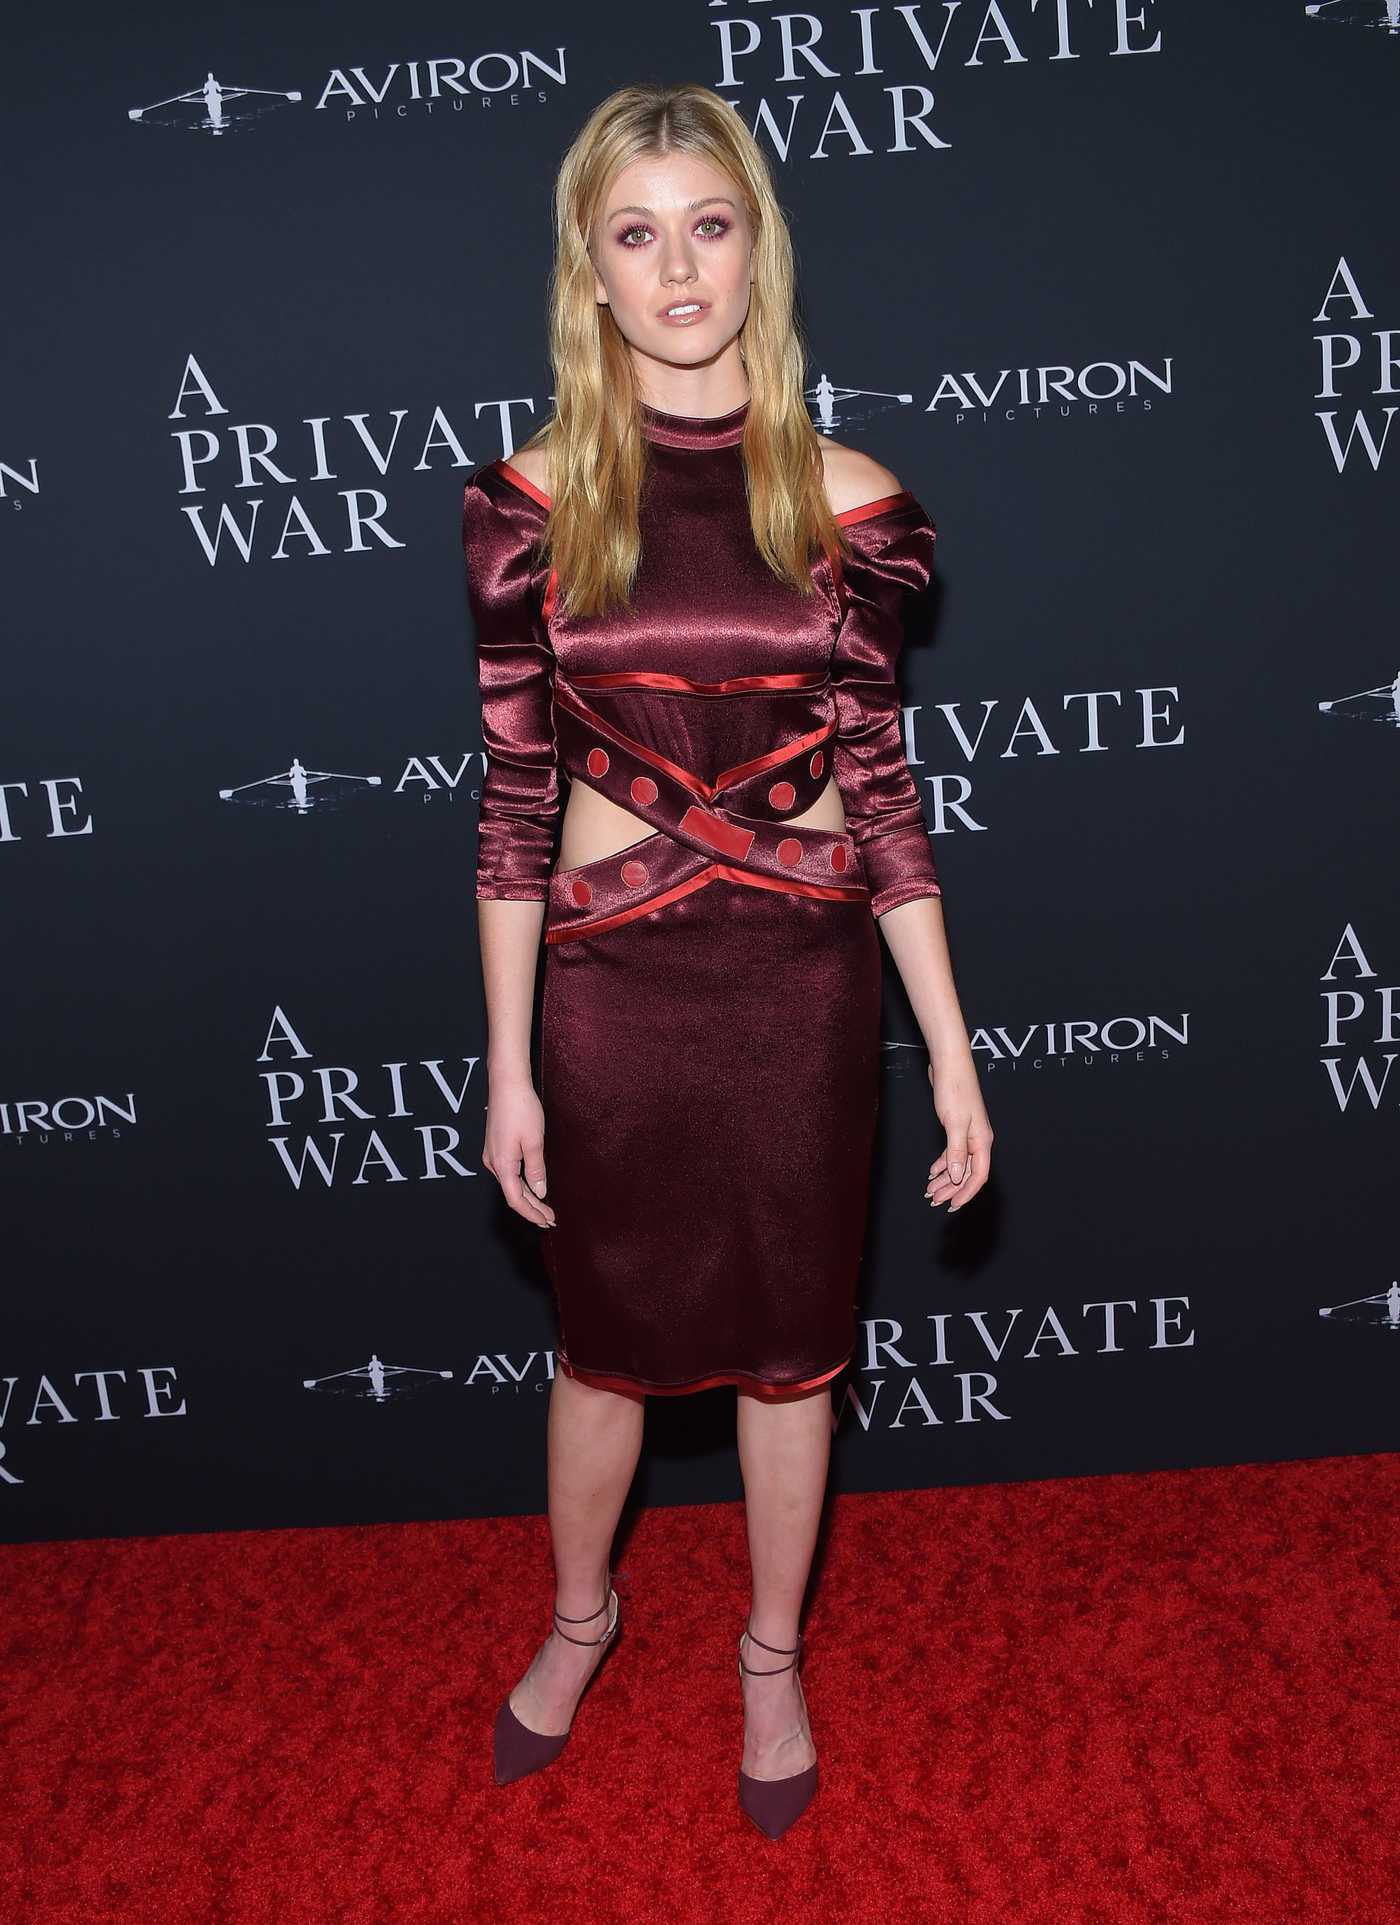 Katherine McNamara Attends A Private War Premiere in Los Angeles 10/24/2018